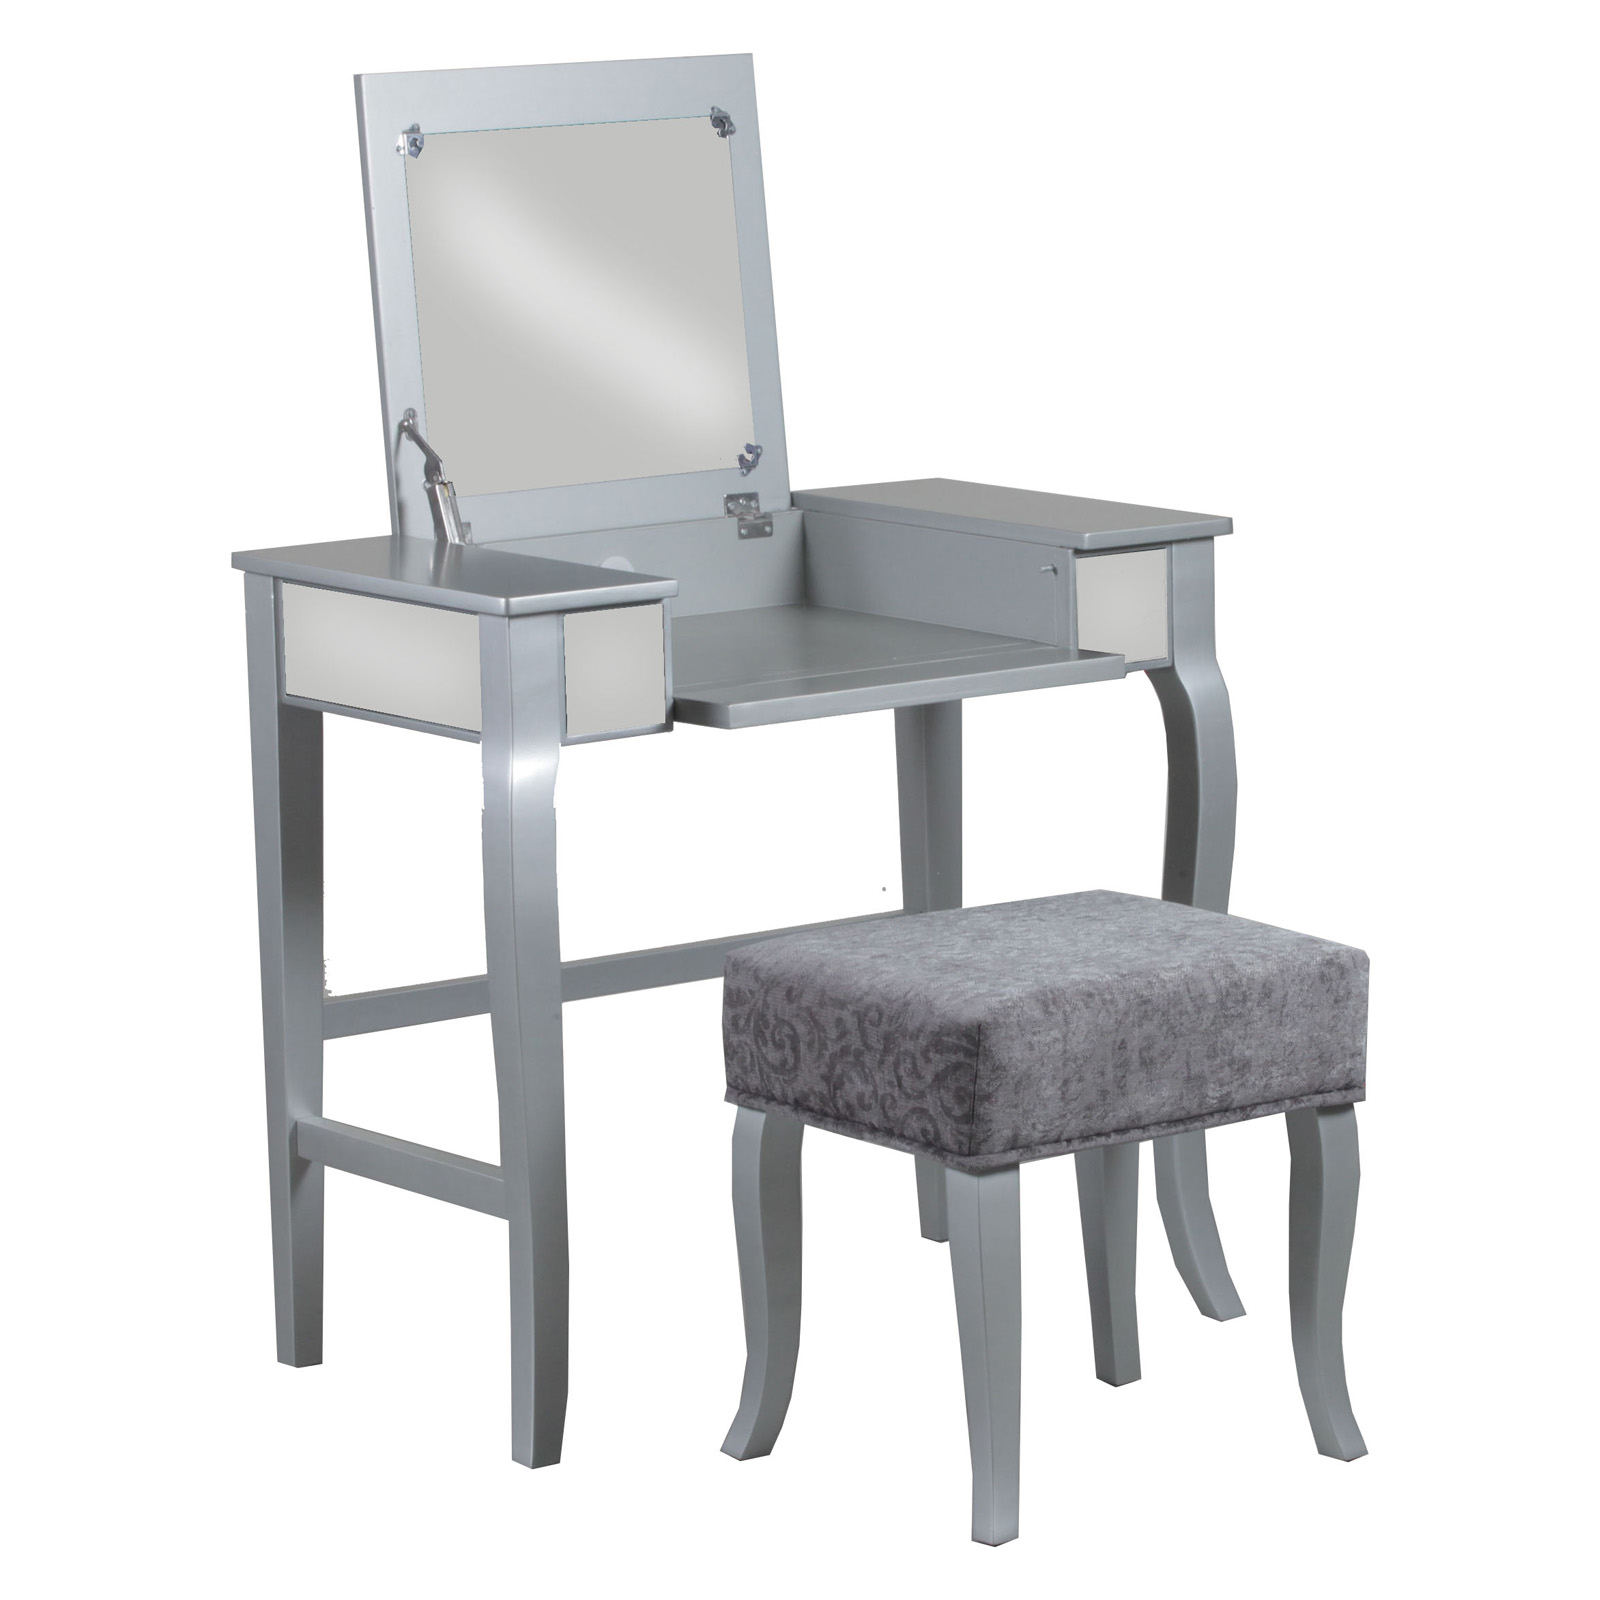 silver vanity table with mirror and bench.  Linon Harper Mirrored Vanity Set Silver or Gold Hayneedle